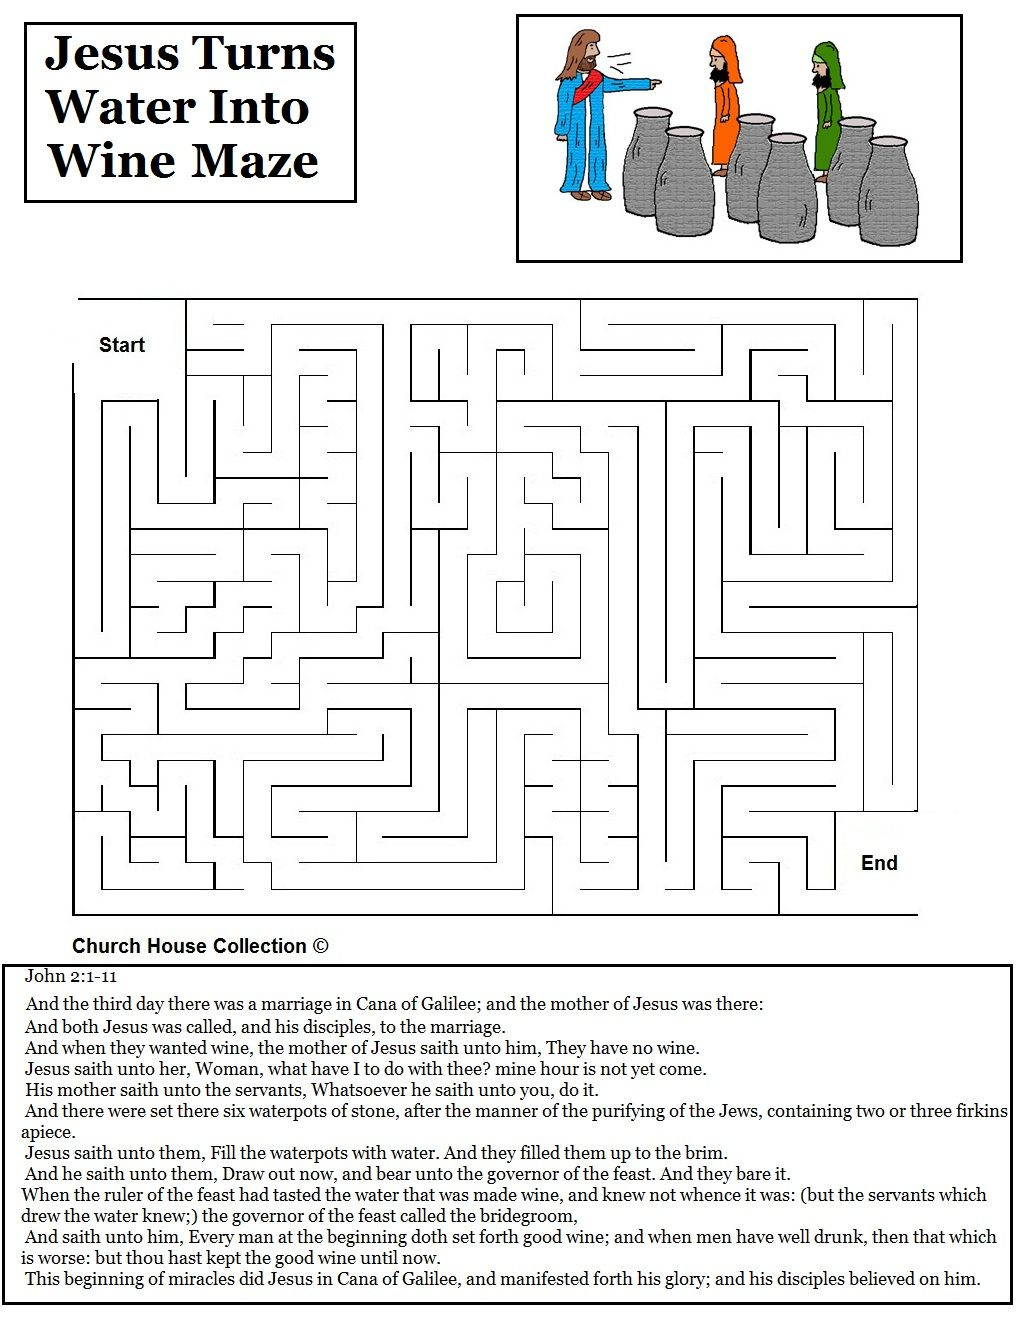 Coloring Pages For Jesus Turning Water Into Wine : Water into wine activities jesus turns